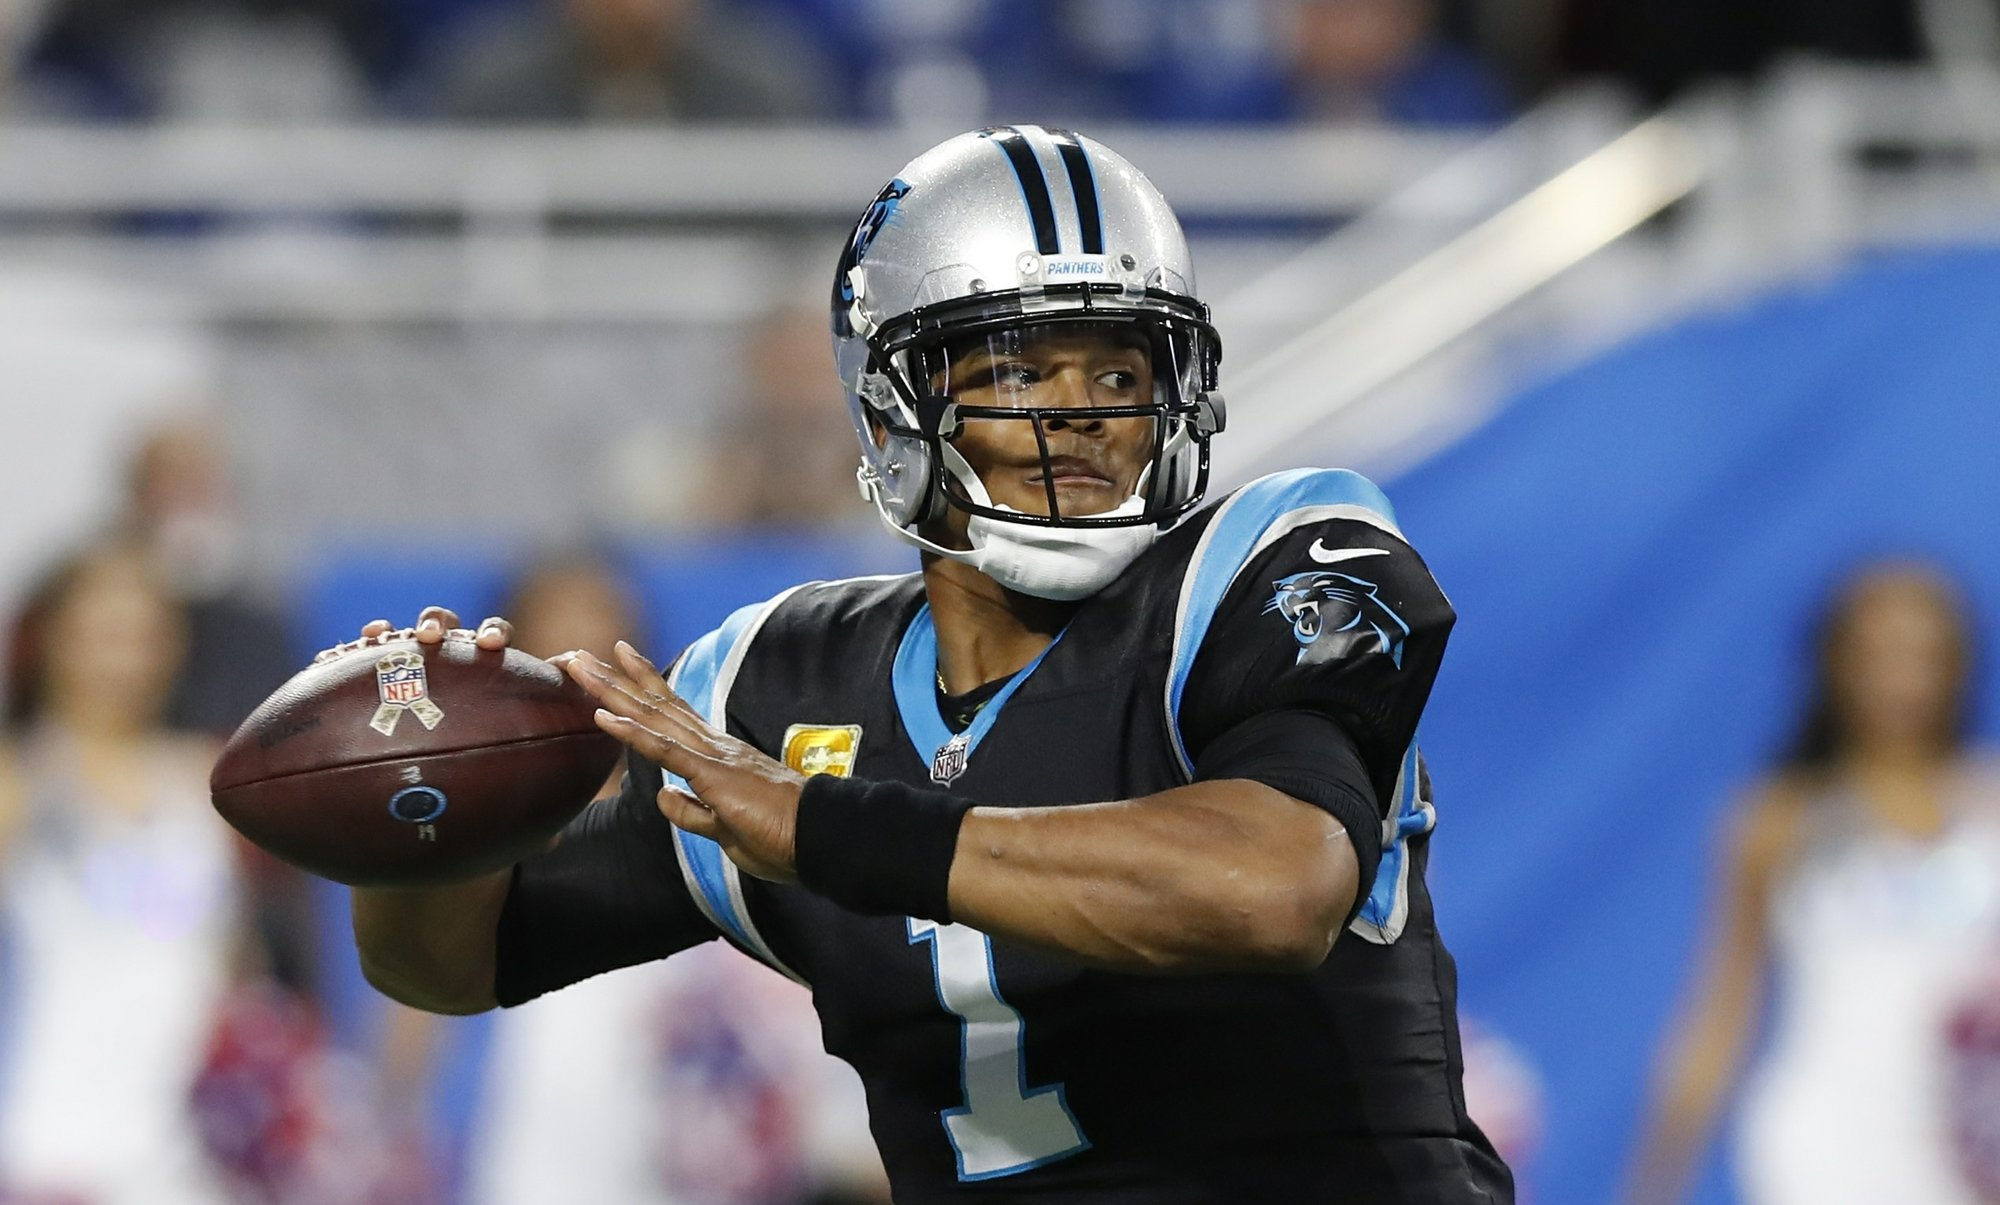 DETROIT AP Cam Newton Took A Shotgun Snap And Set Up In Clean Pocket Surveying The Field From Sideline To Star Quarterback Had Time